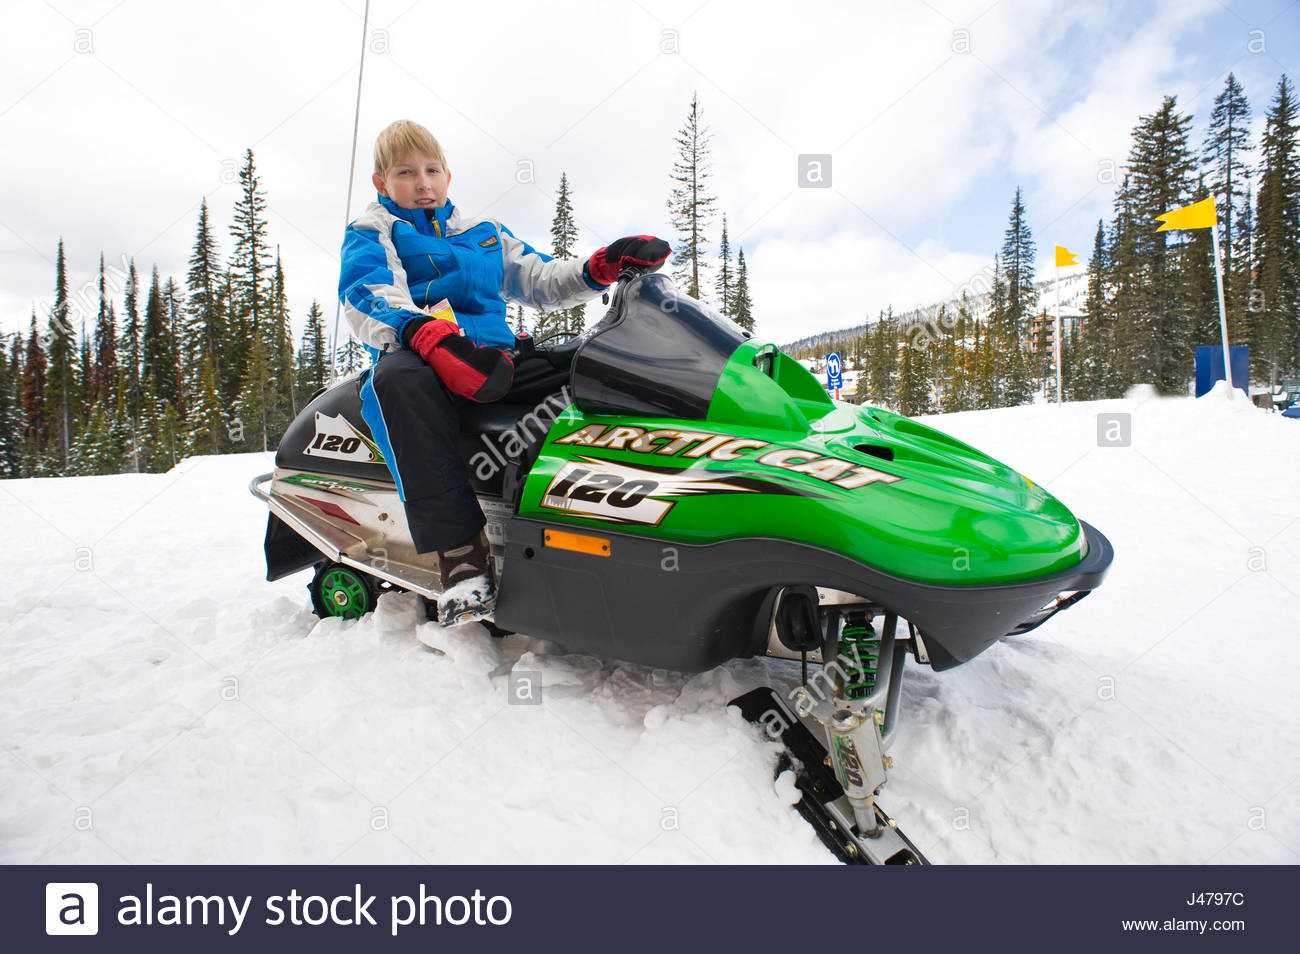 Boy sitting on a Snowmobile Adventure Park, Big White, British Columbia, Canada - Stock Image